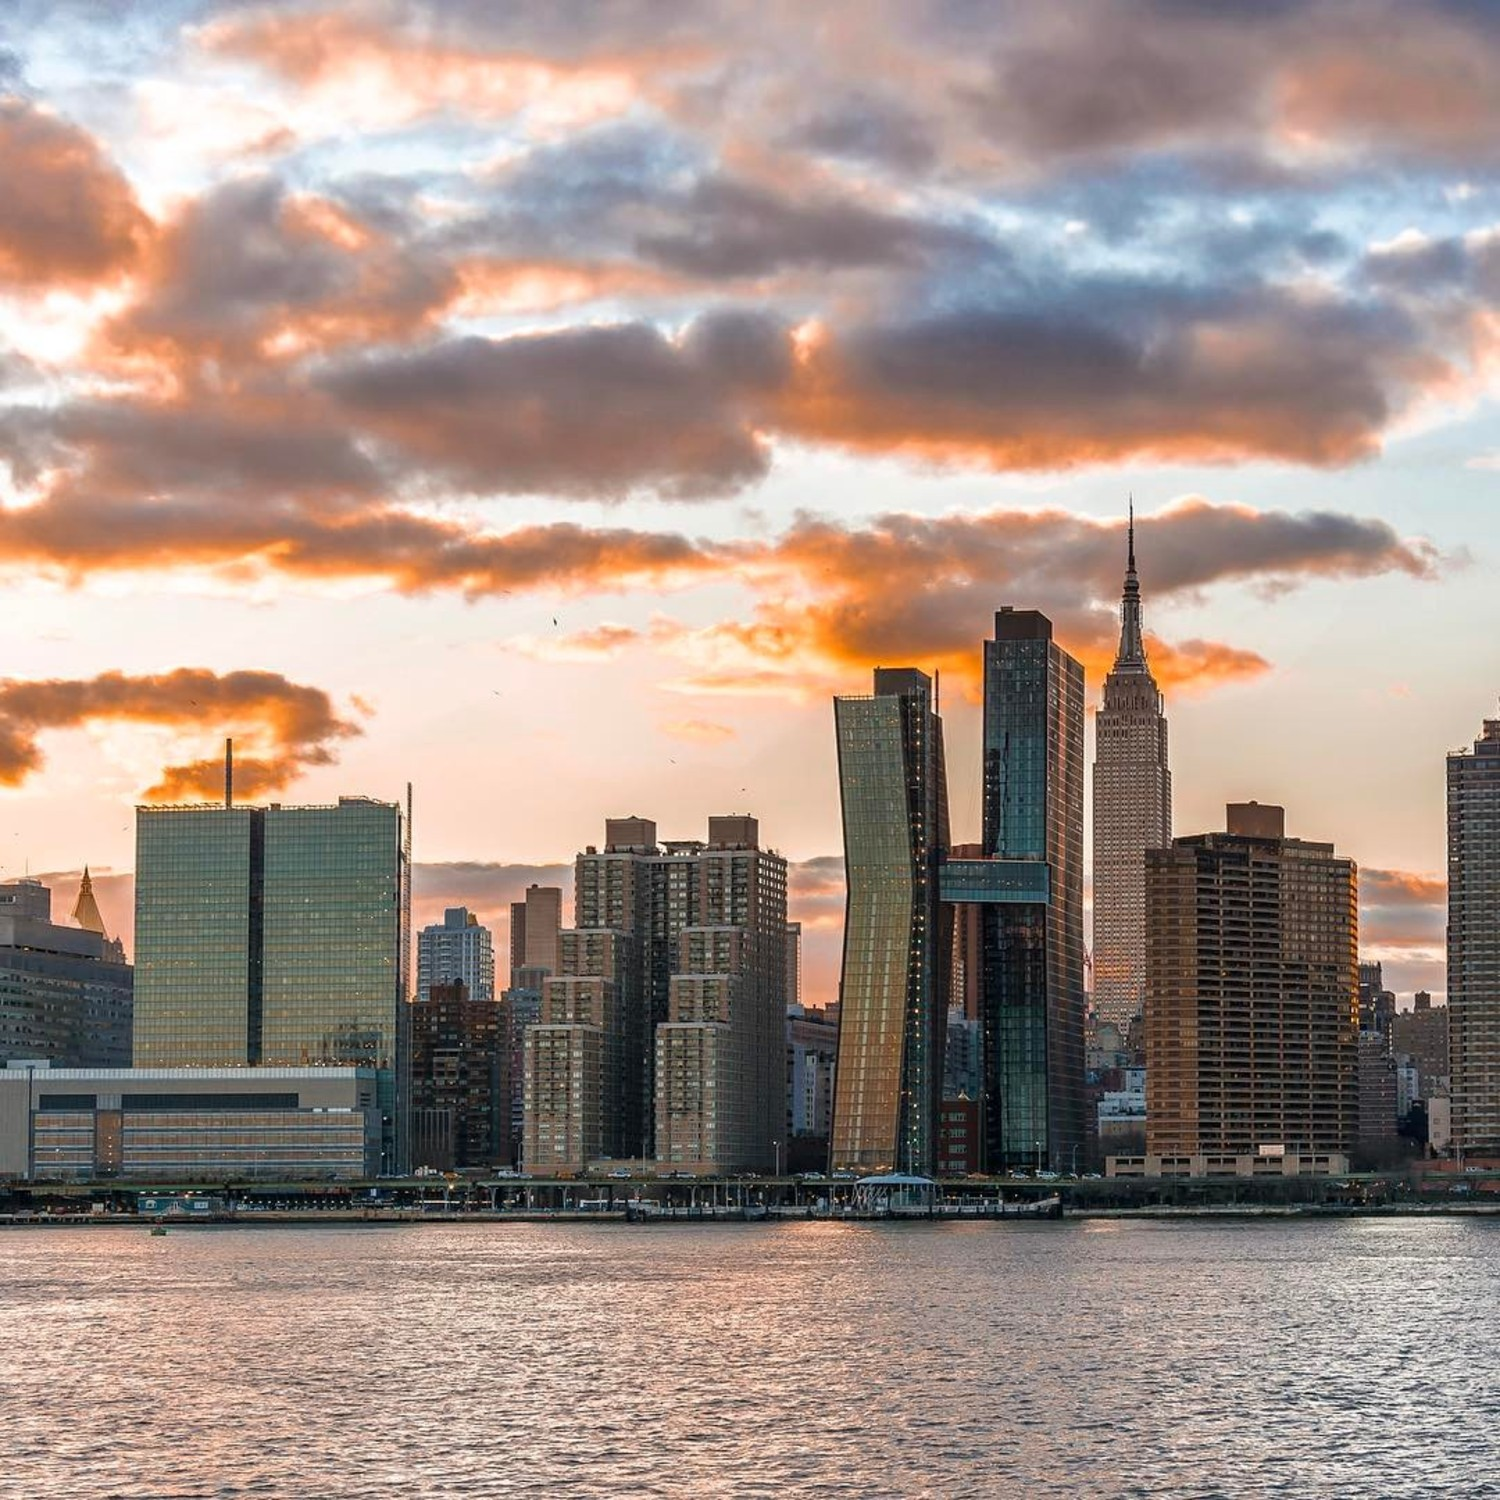 Sunset over Manhattan, New York City. Last evening's view from Hunters Point South Park, Long Island City, Queens. It was nice to meet you @krisalhe and @ctg125.